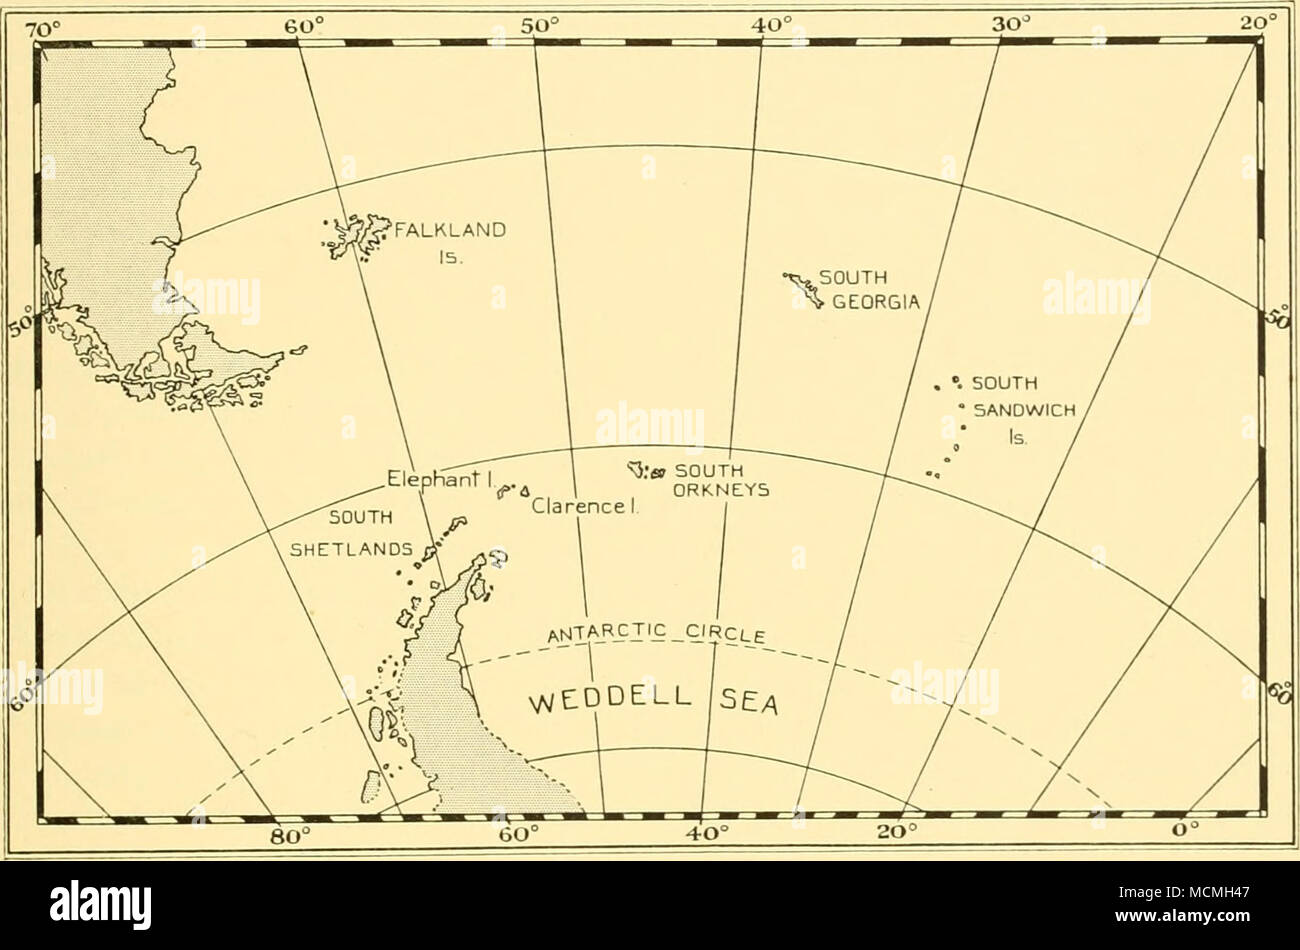 . Fig. 10. The Falkland Islands and their Dependencies. very much less. Coronation Island, the largest of the group, even at its broadest point being scarcely eight miles across. With the exception of Signy all the larger islands are extensively ice-clad, and in this as in other respects the group may perhaps be considered to be more truly Antarctic in character than the South Shetlands which lie considerably farther to the south. Lying near the Weddell Sea, the South Orkneys become involved annually in the general winter freeze-up of the Antarctic Ocean and in consequence are only accessible  - Stock Image